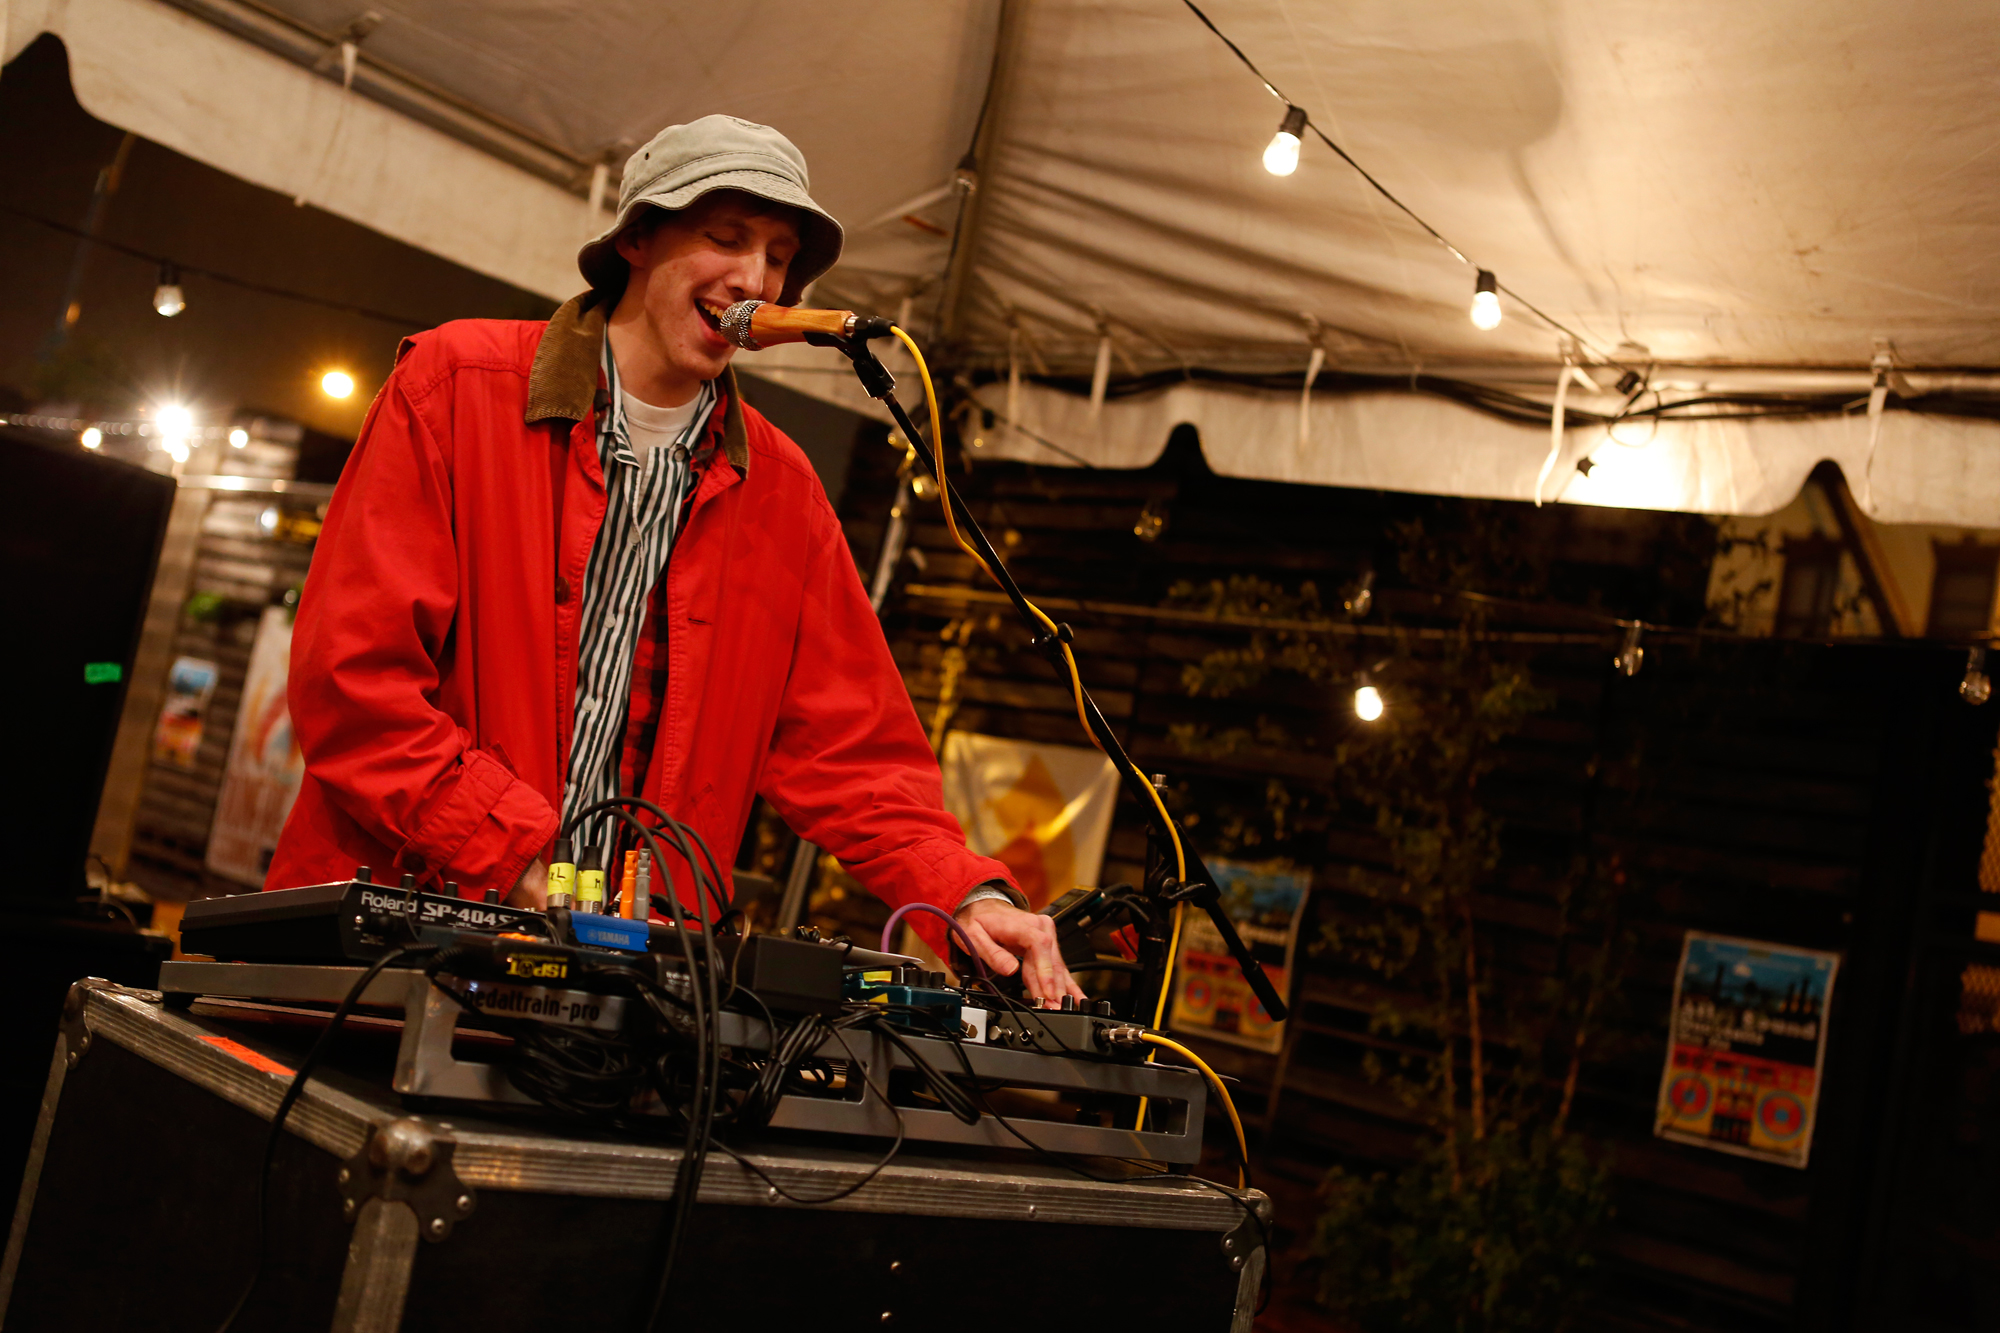 Atlas Sound performs at the Noisey\Jansport party at Greenwood Park in Brooklyn, New York on Sept. 12, 2014.